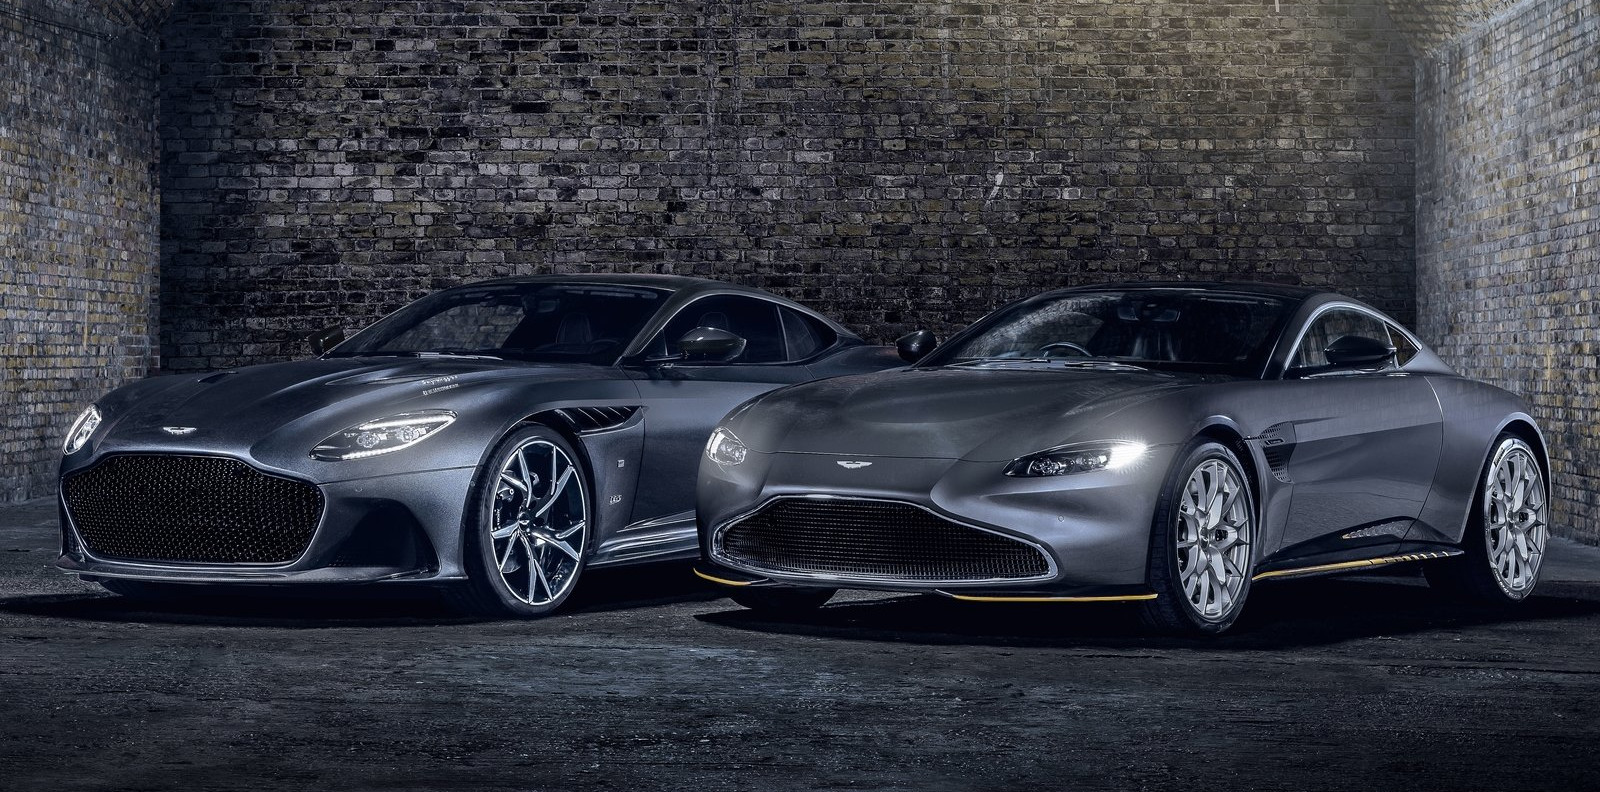 Aston Martin Vantage y DBS Superleggera 007 Edition, con estilo James Bond